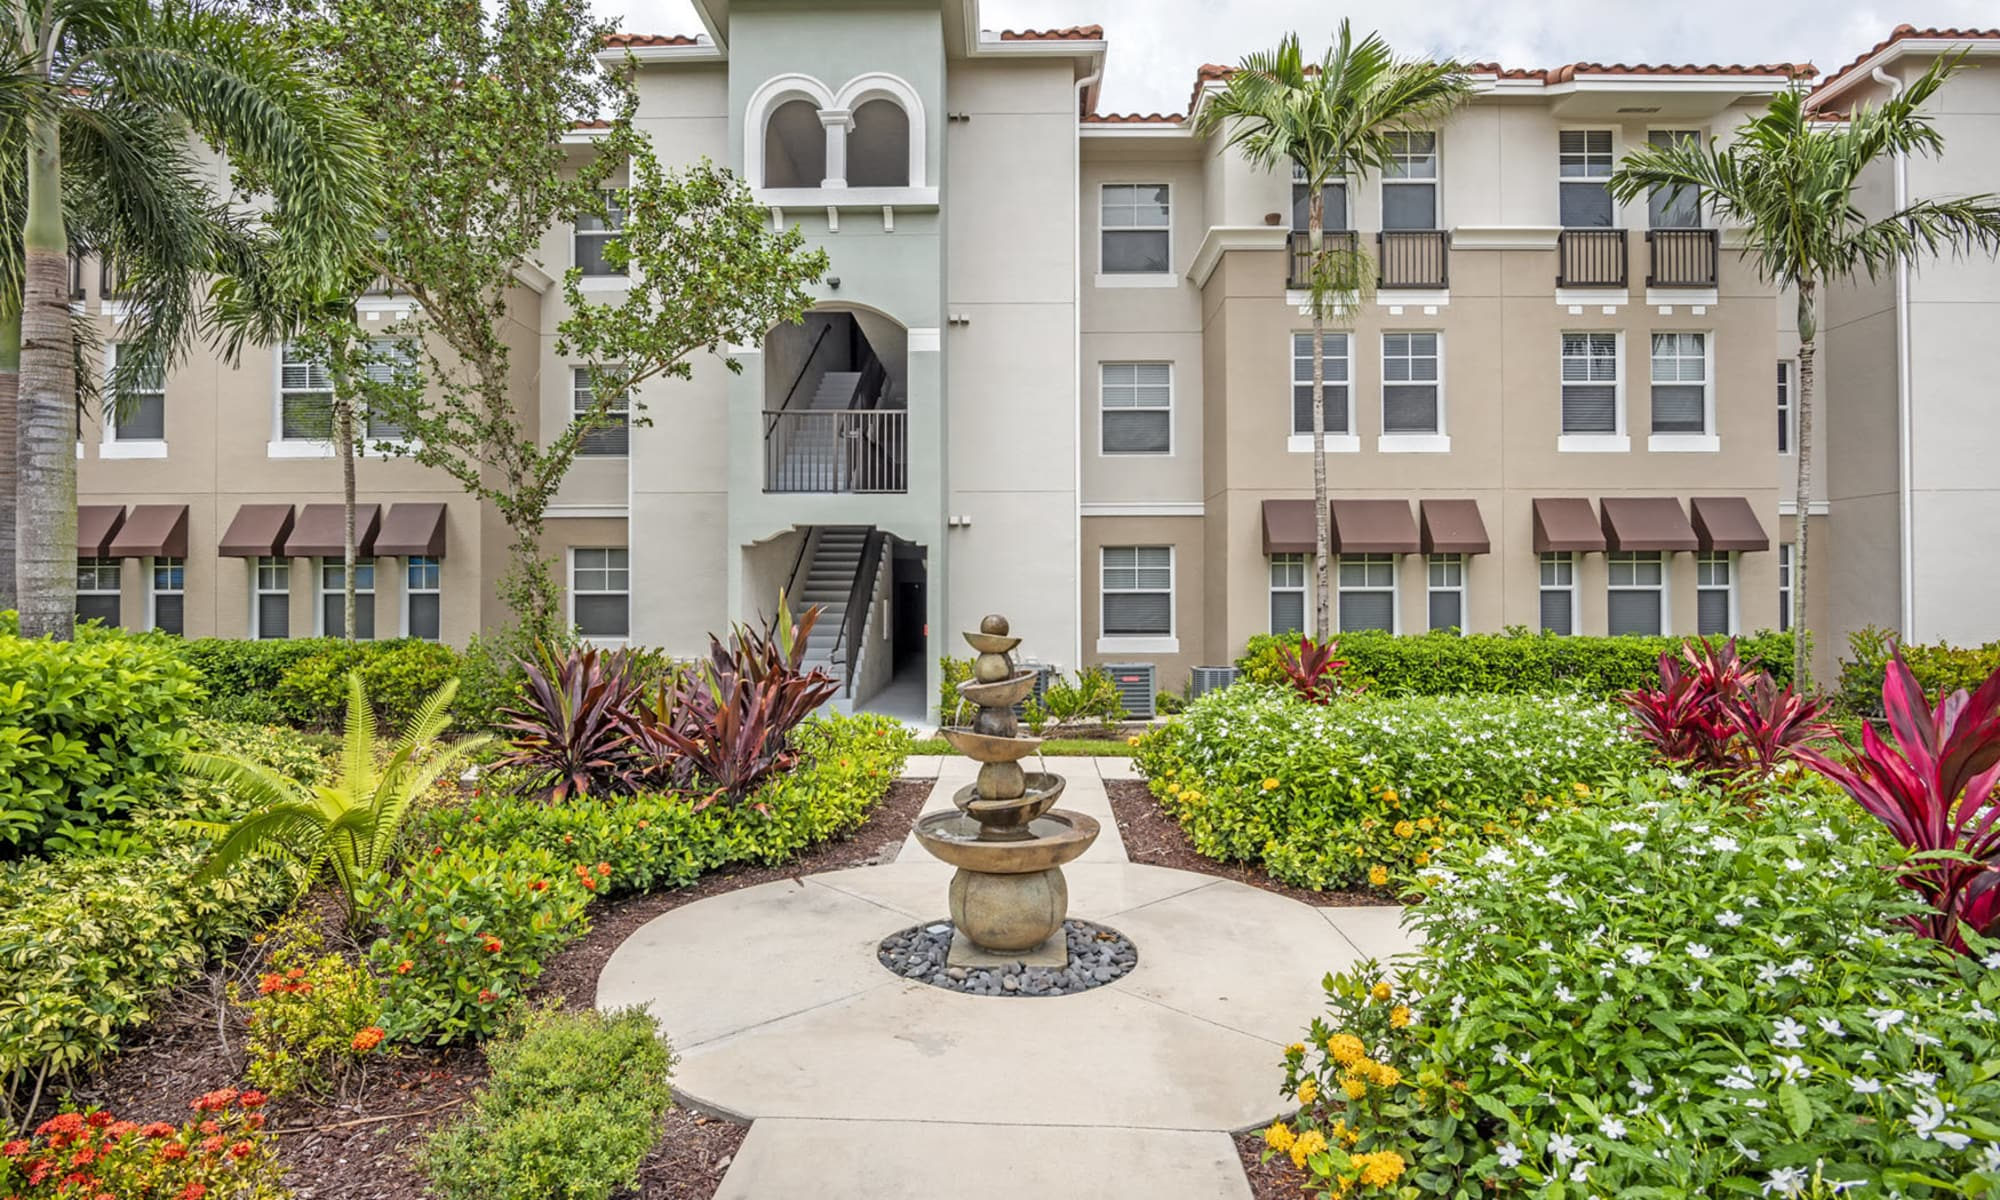 Apartments at IMT Miramar in Miramar, Florida